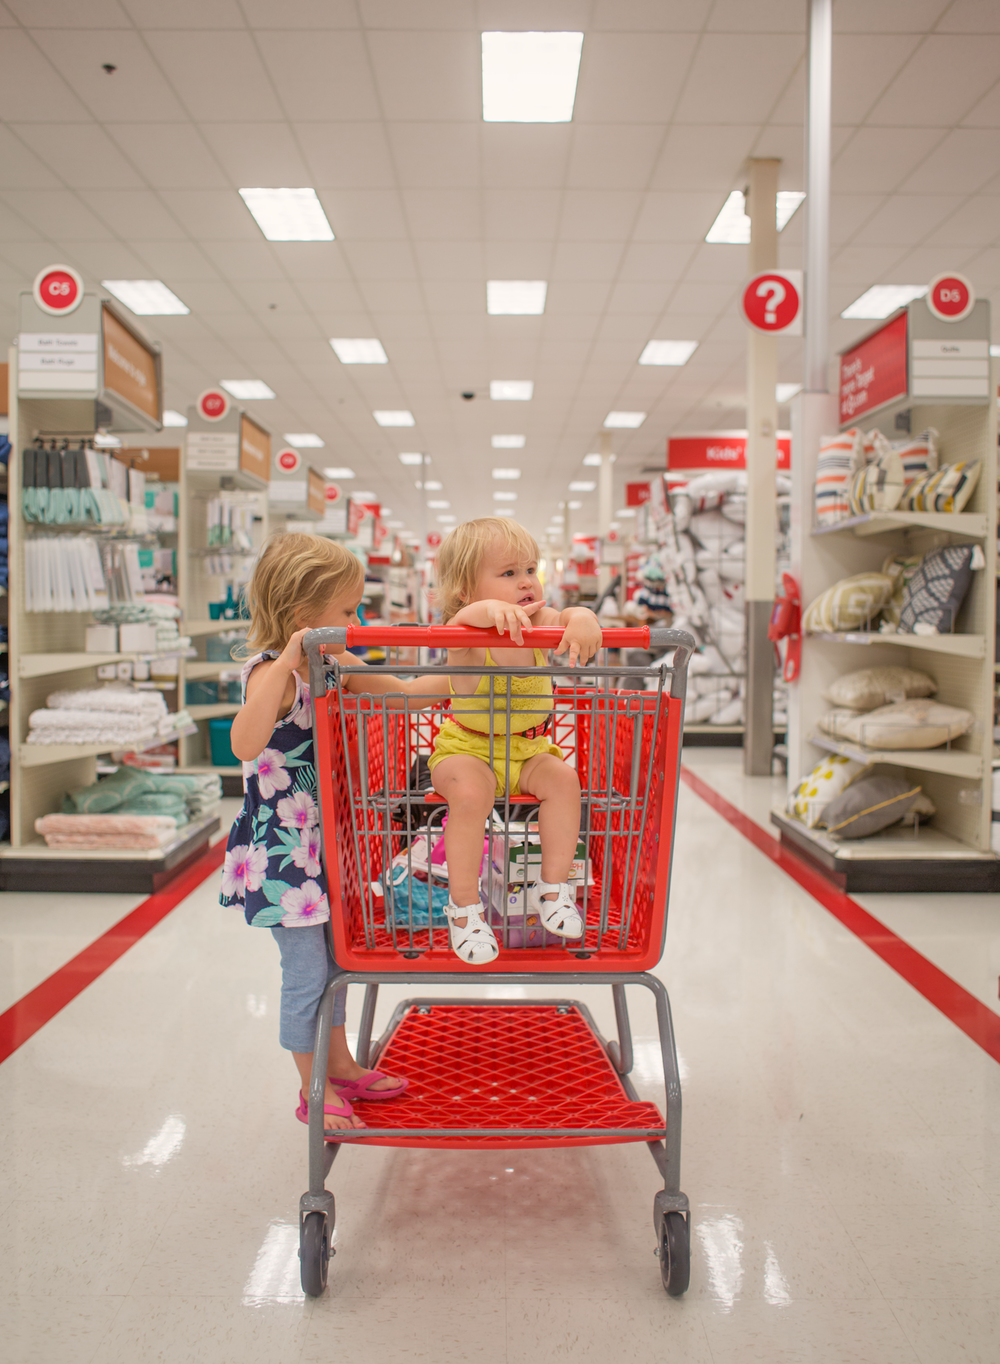 04 young girls target shopping cart edmond oklahoma photographer lifestyle portrait (1).png